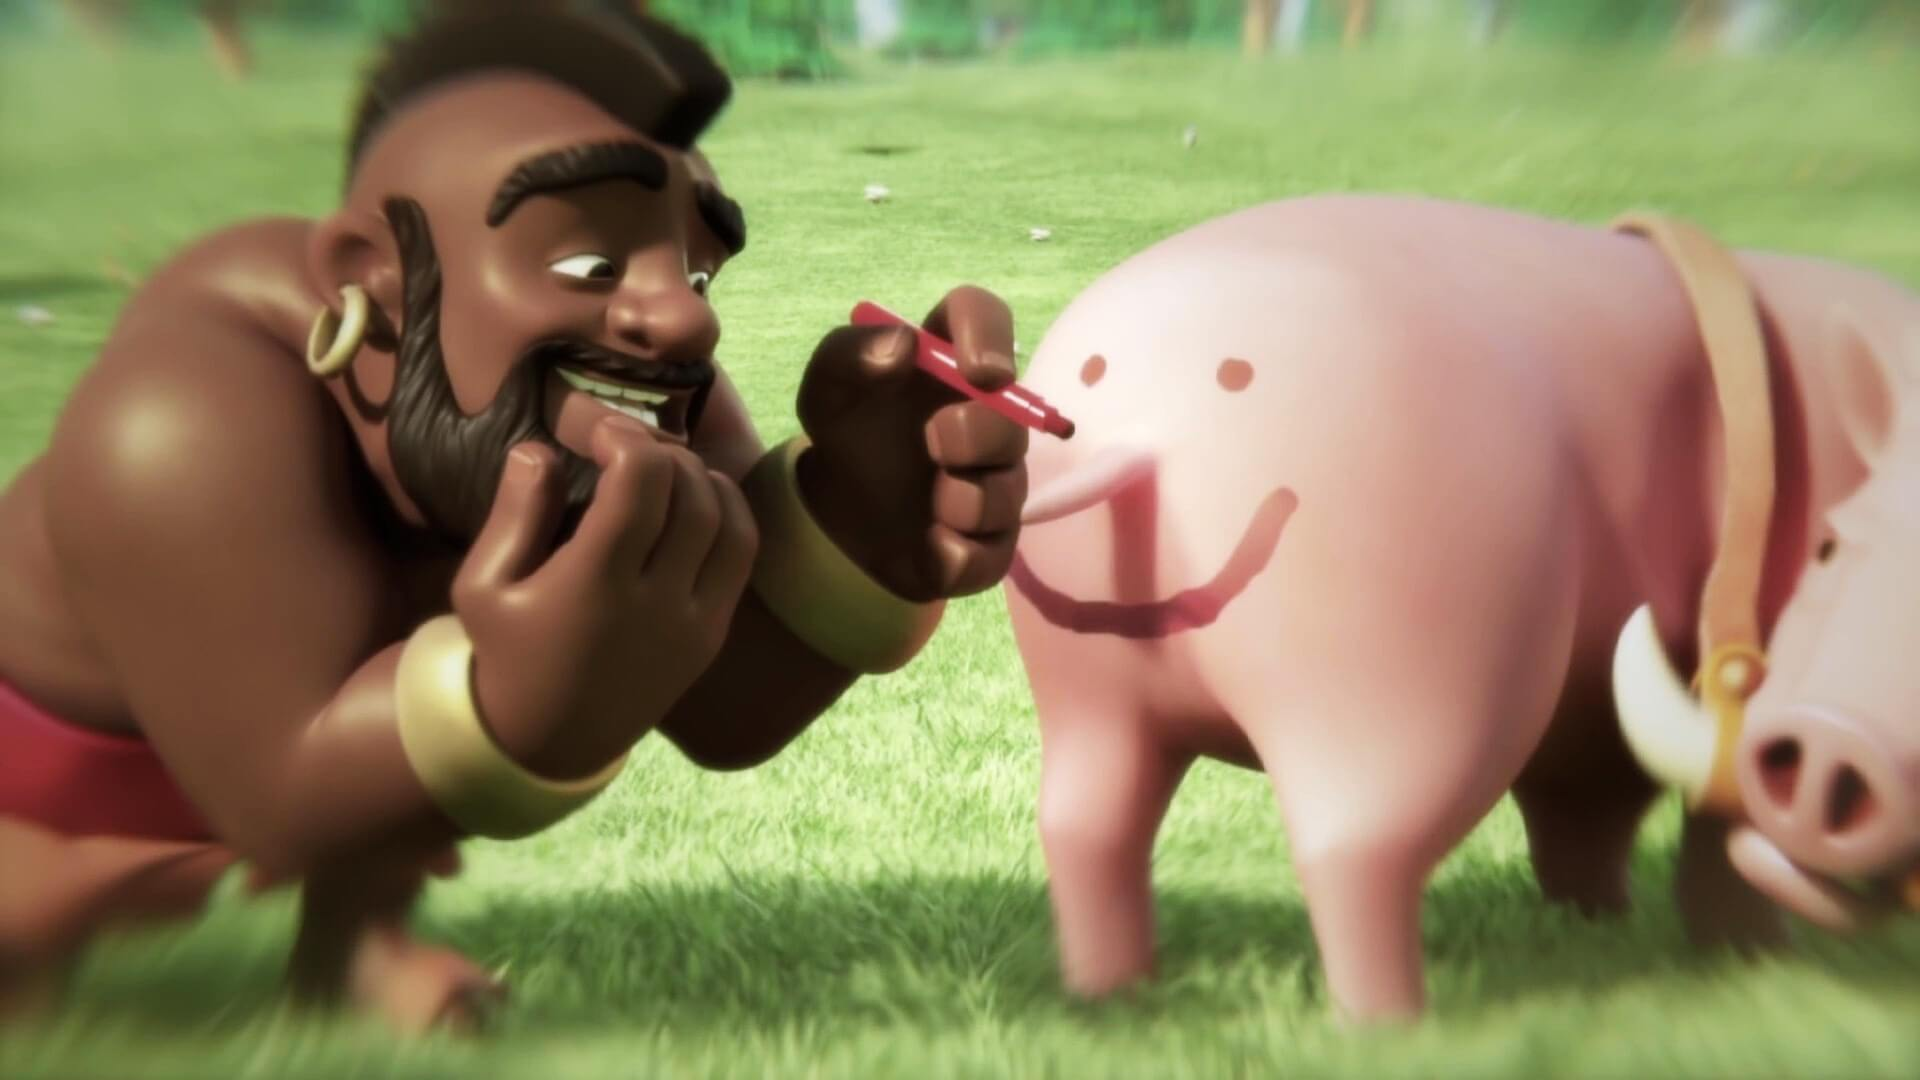 Clash of Clans Funny Pig and Hog Rider Wallpaper